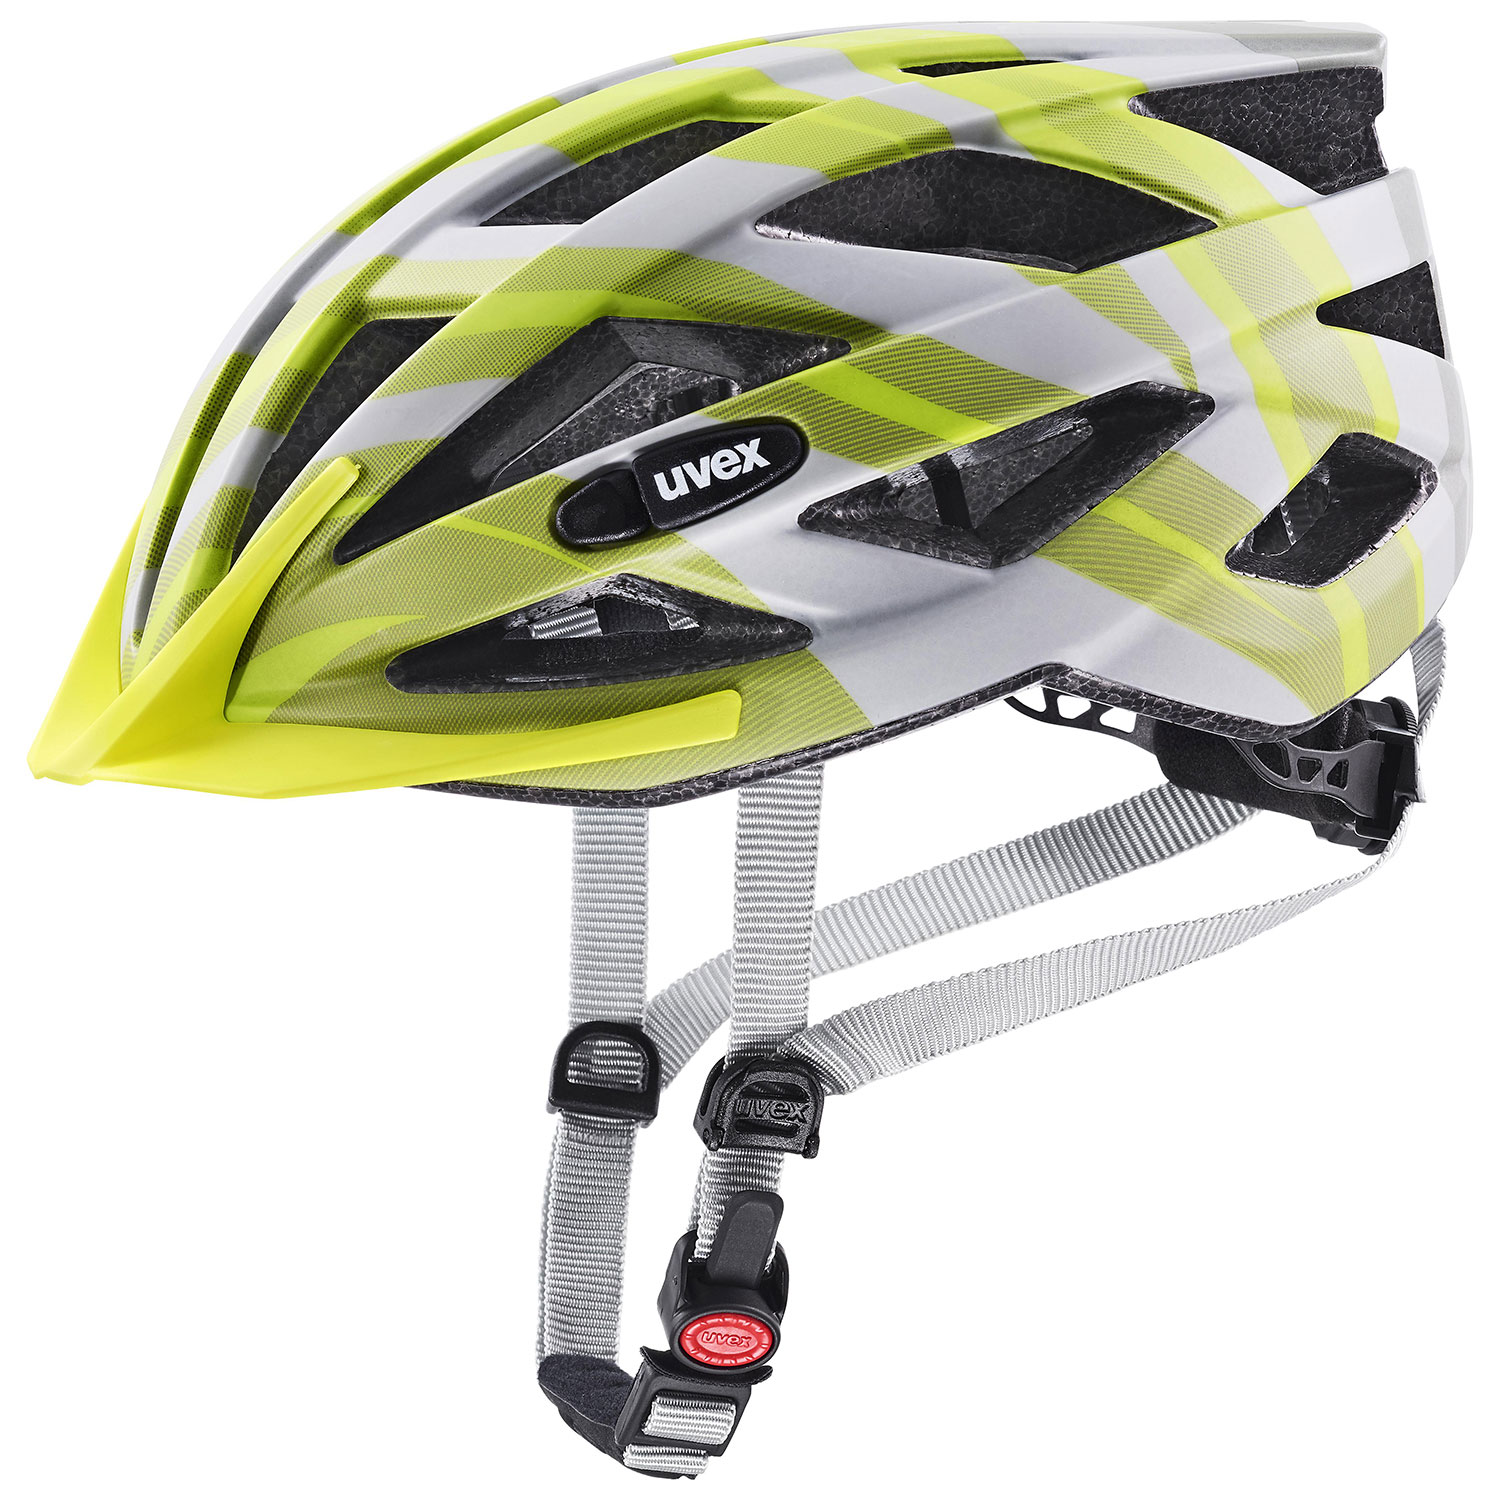 2021 UVEX HELMA AIR WING CC, GREY - LIME MAT 56-60